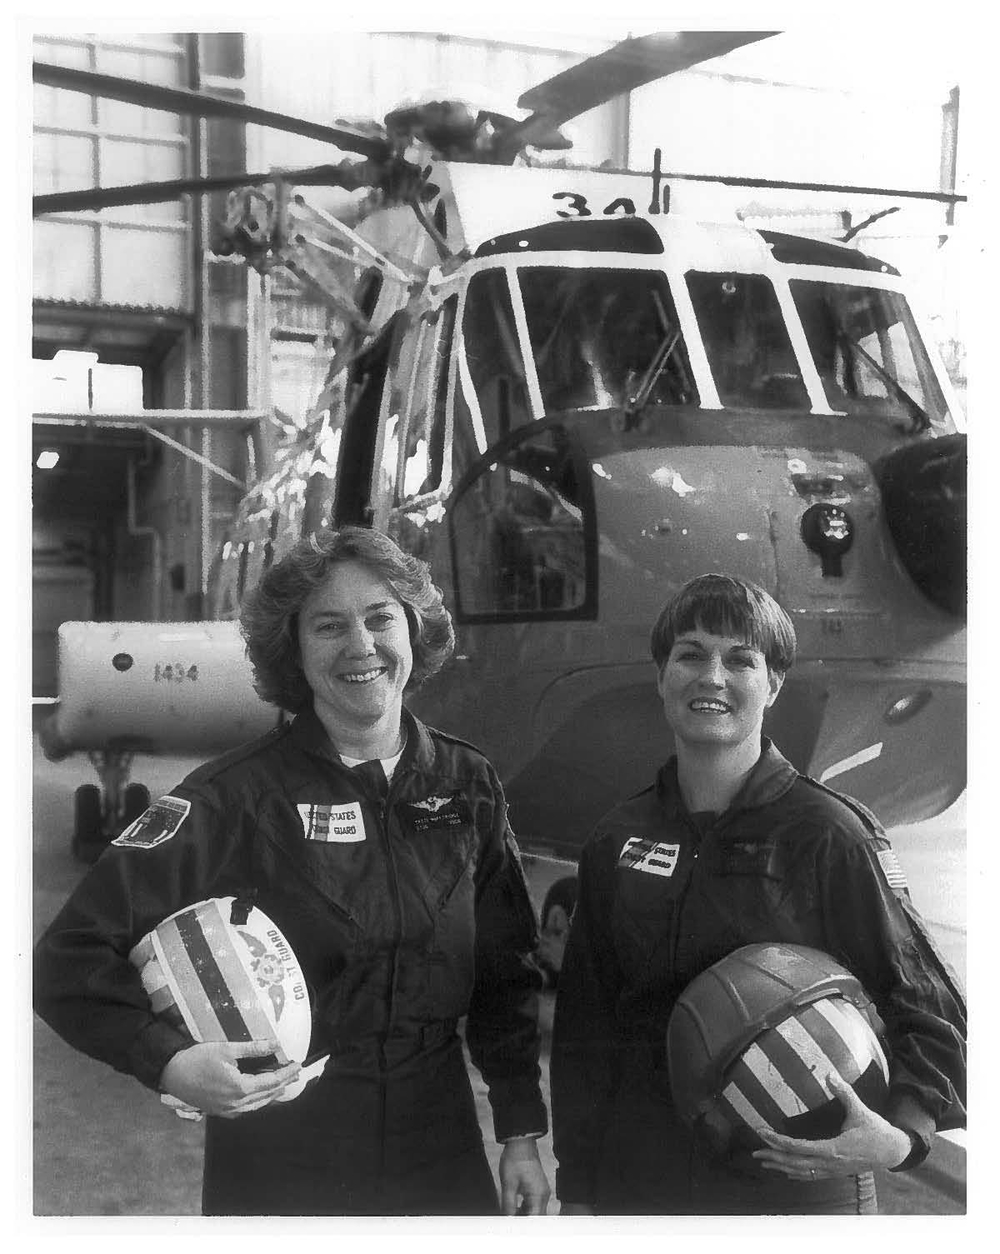 Days past: LTJG Patricia McFetridge and fellow aviator LT Guth.